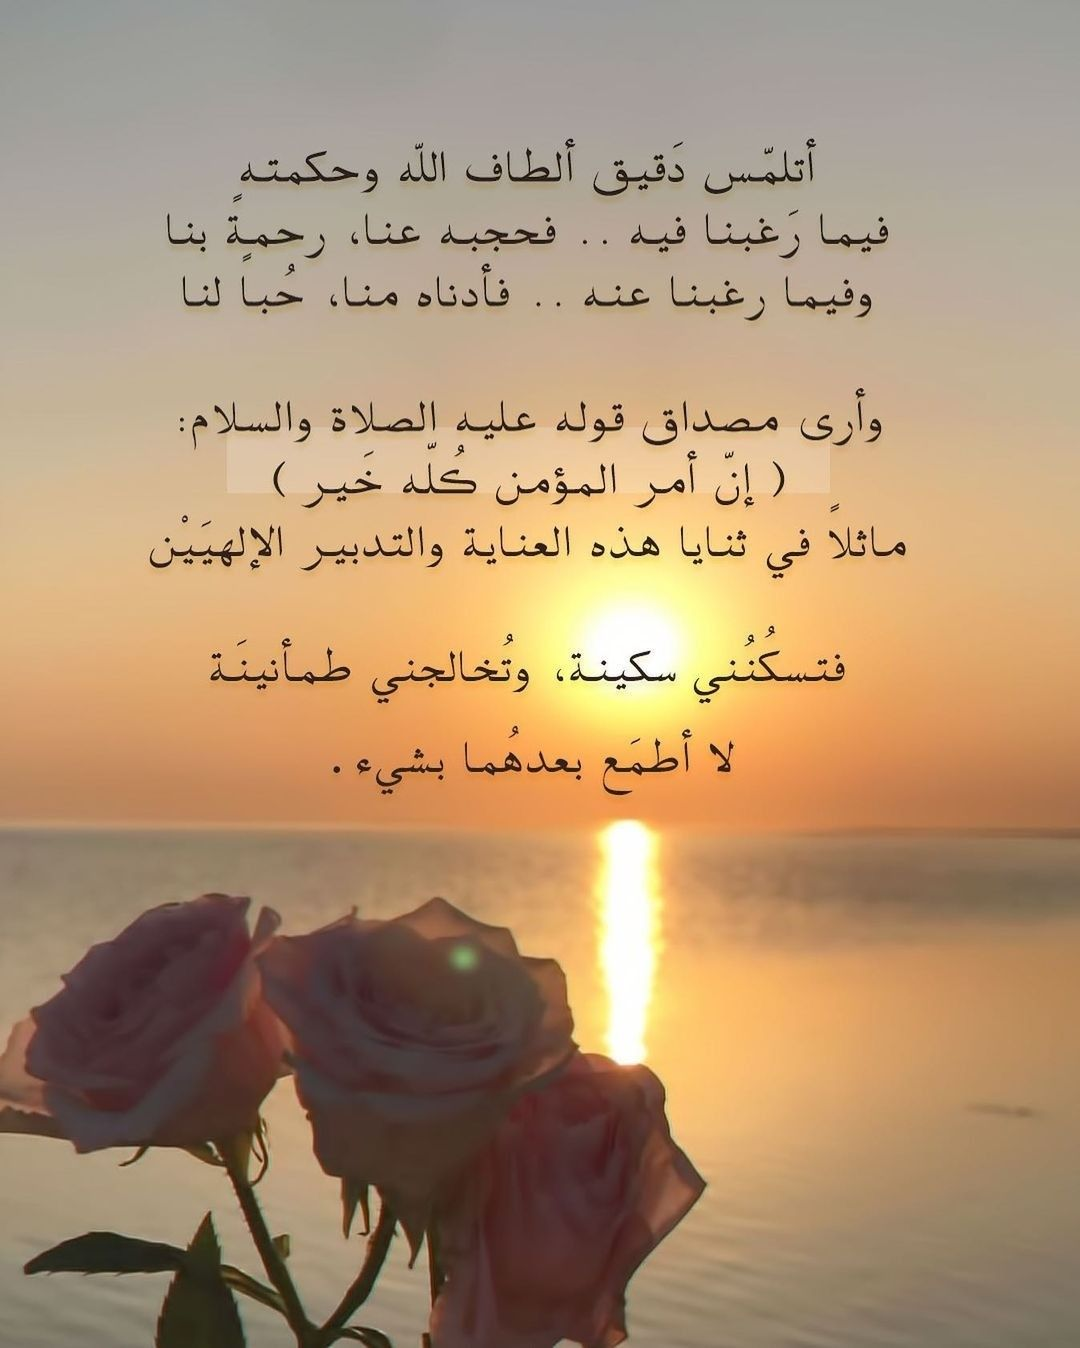 Pin By عبق الورد On أقول حكم ونصائح In 2021 Life Quotes Arabic Quotes Quotes